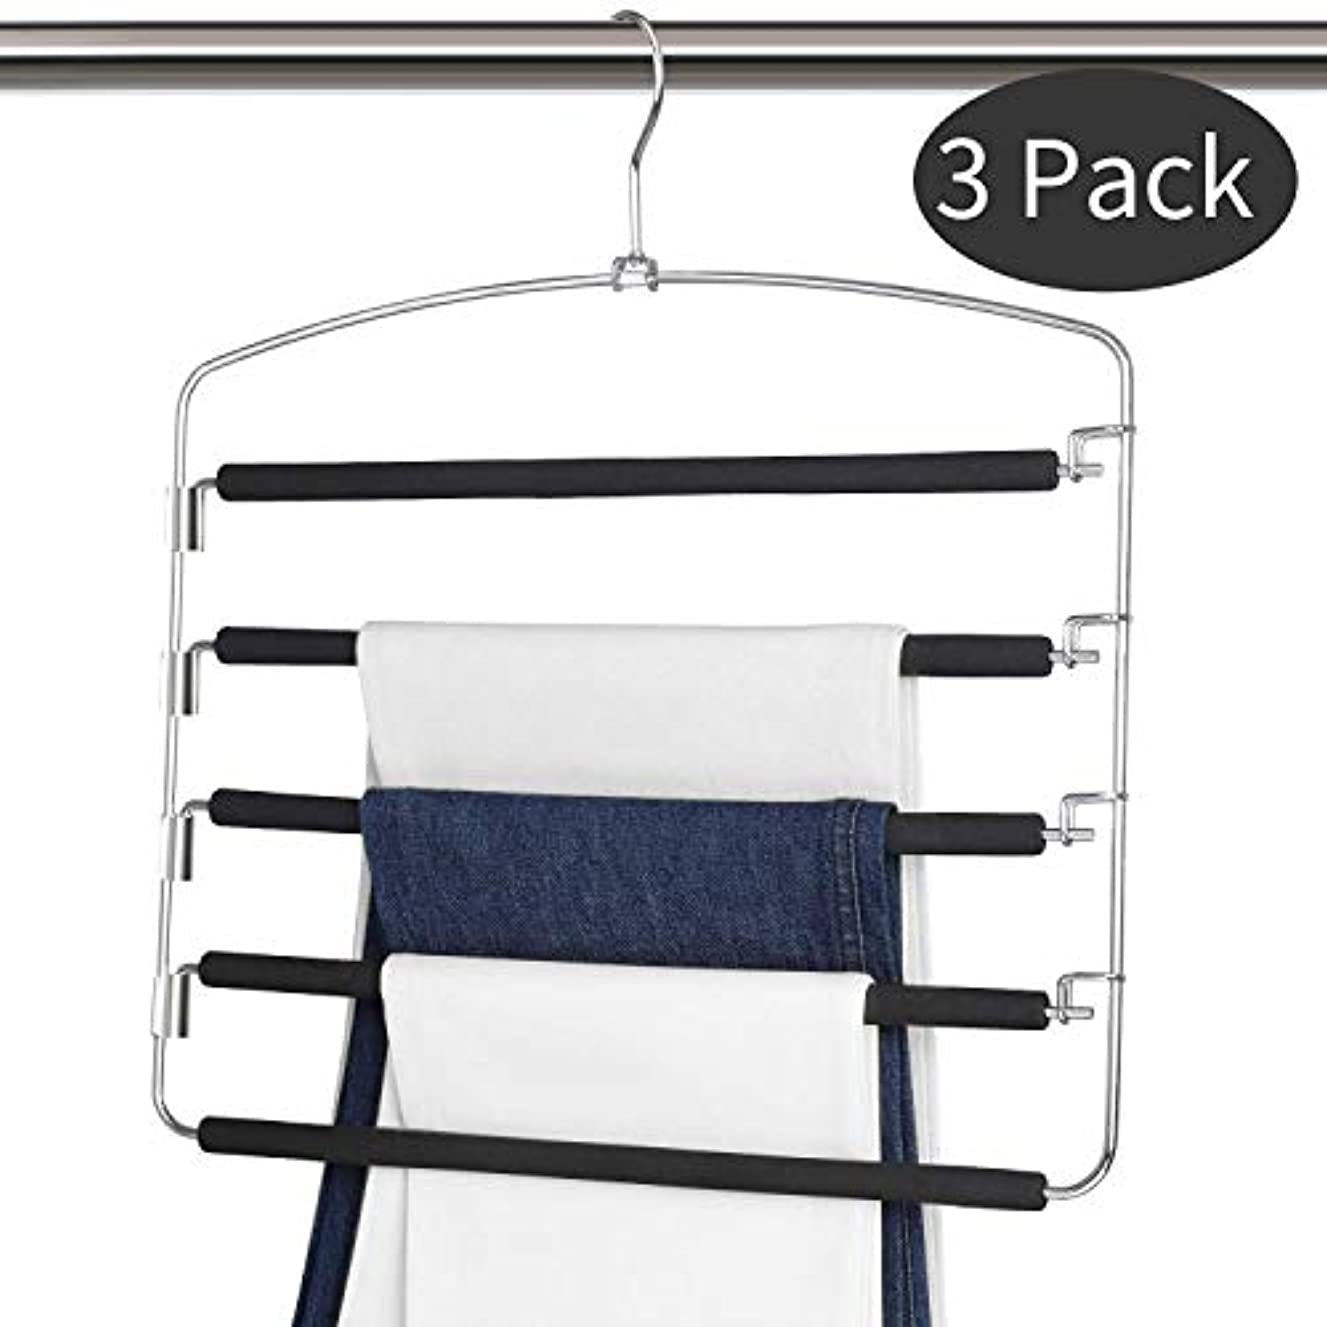 Myfolrena Pants Hangers Non Slip, Foam Paded Swing Arm Hanger Space Saving Hangers Closet Organizer for Jeans,Slacks Trousers,Scarves(3-Pack)